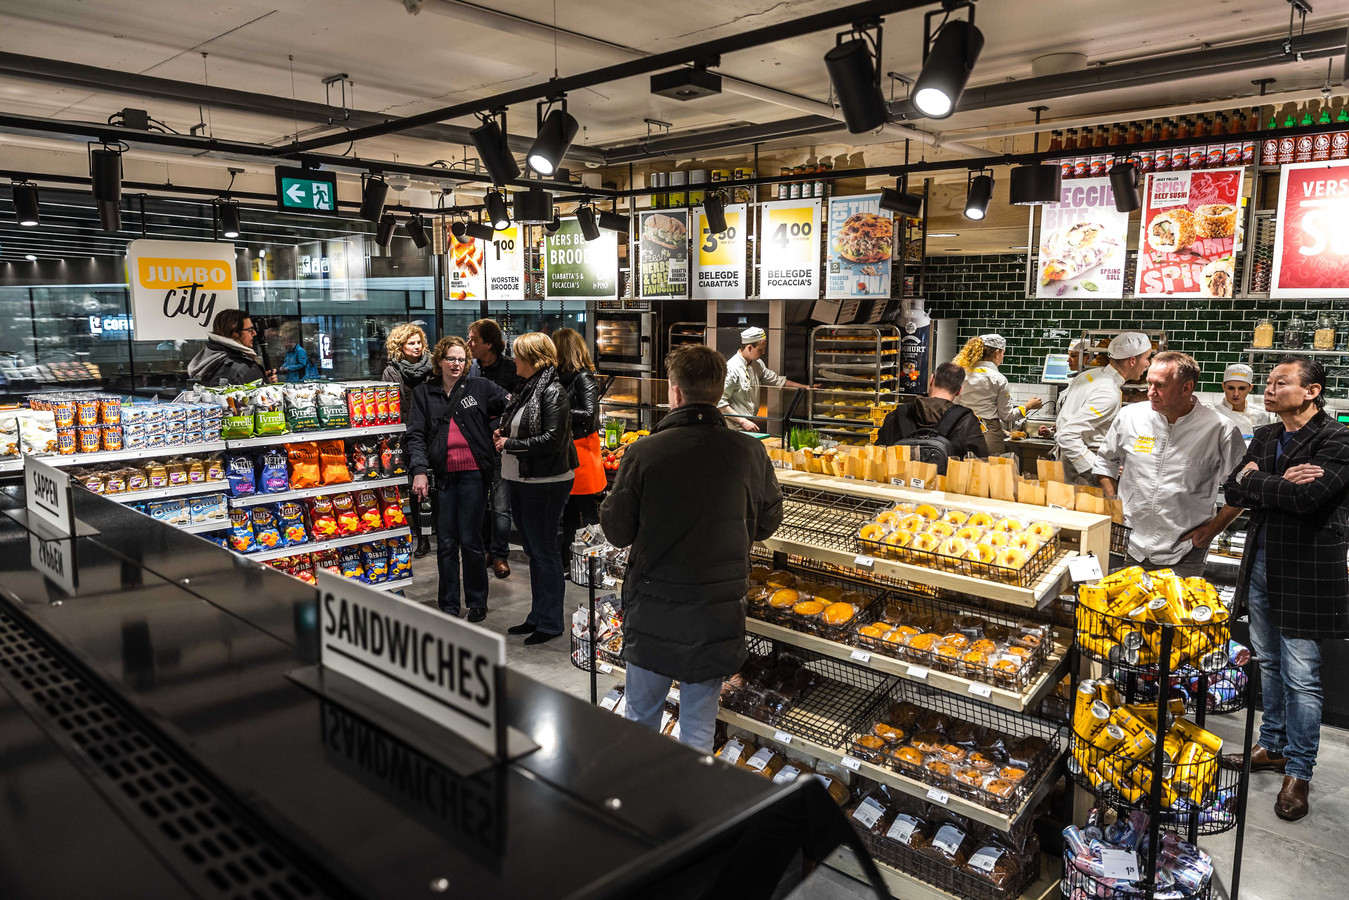 Jumbo City Opent 13 December Vestiging In Visstraat Den Bosch